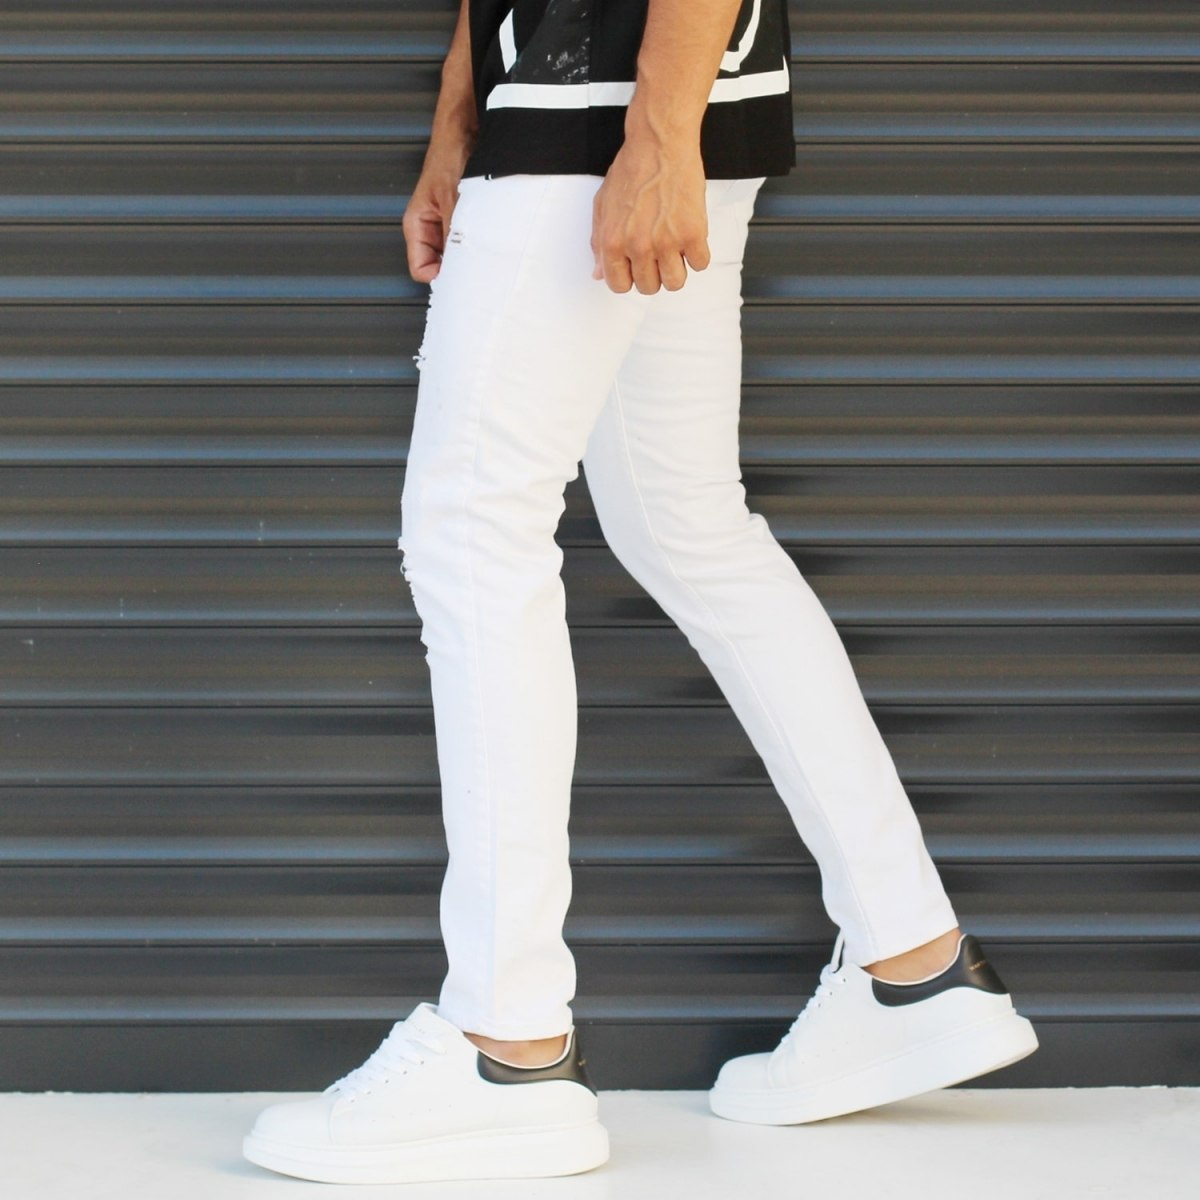 Men's Skinny Jeans With Thin Rips In White Mv Premium Brand - 3